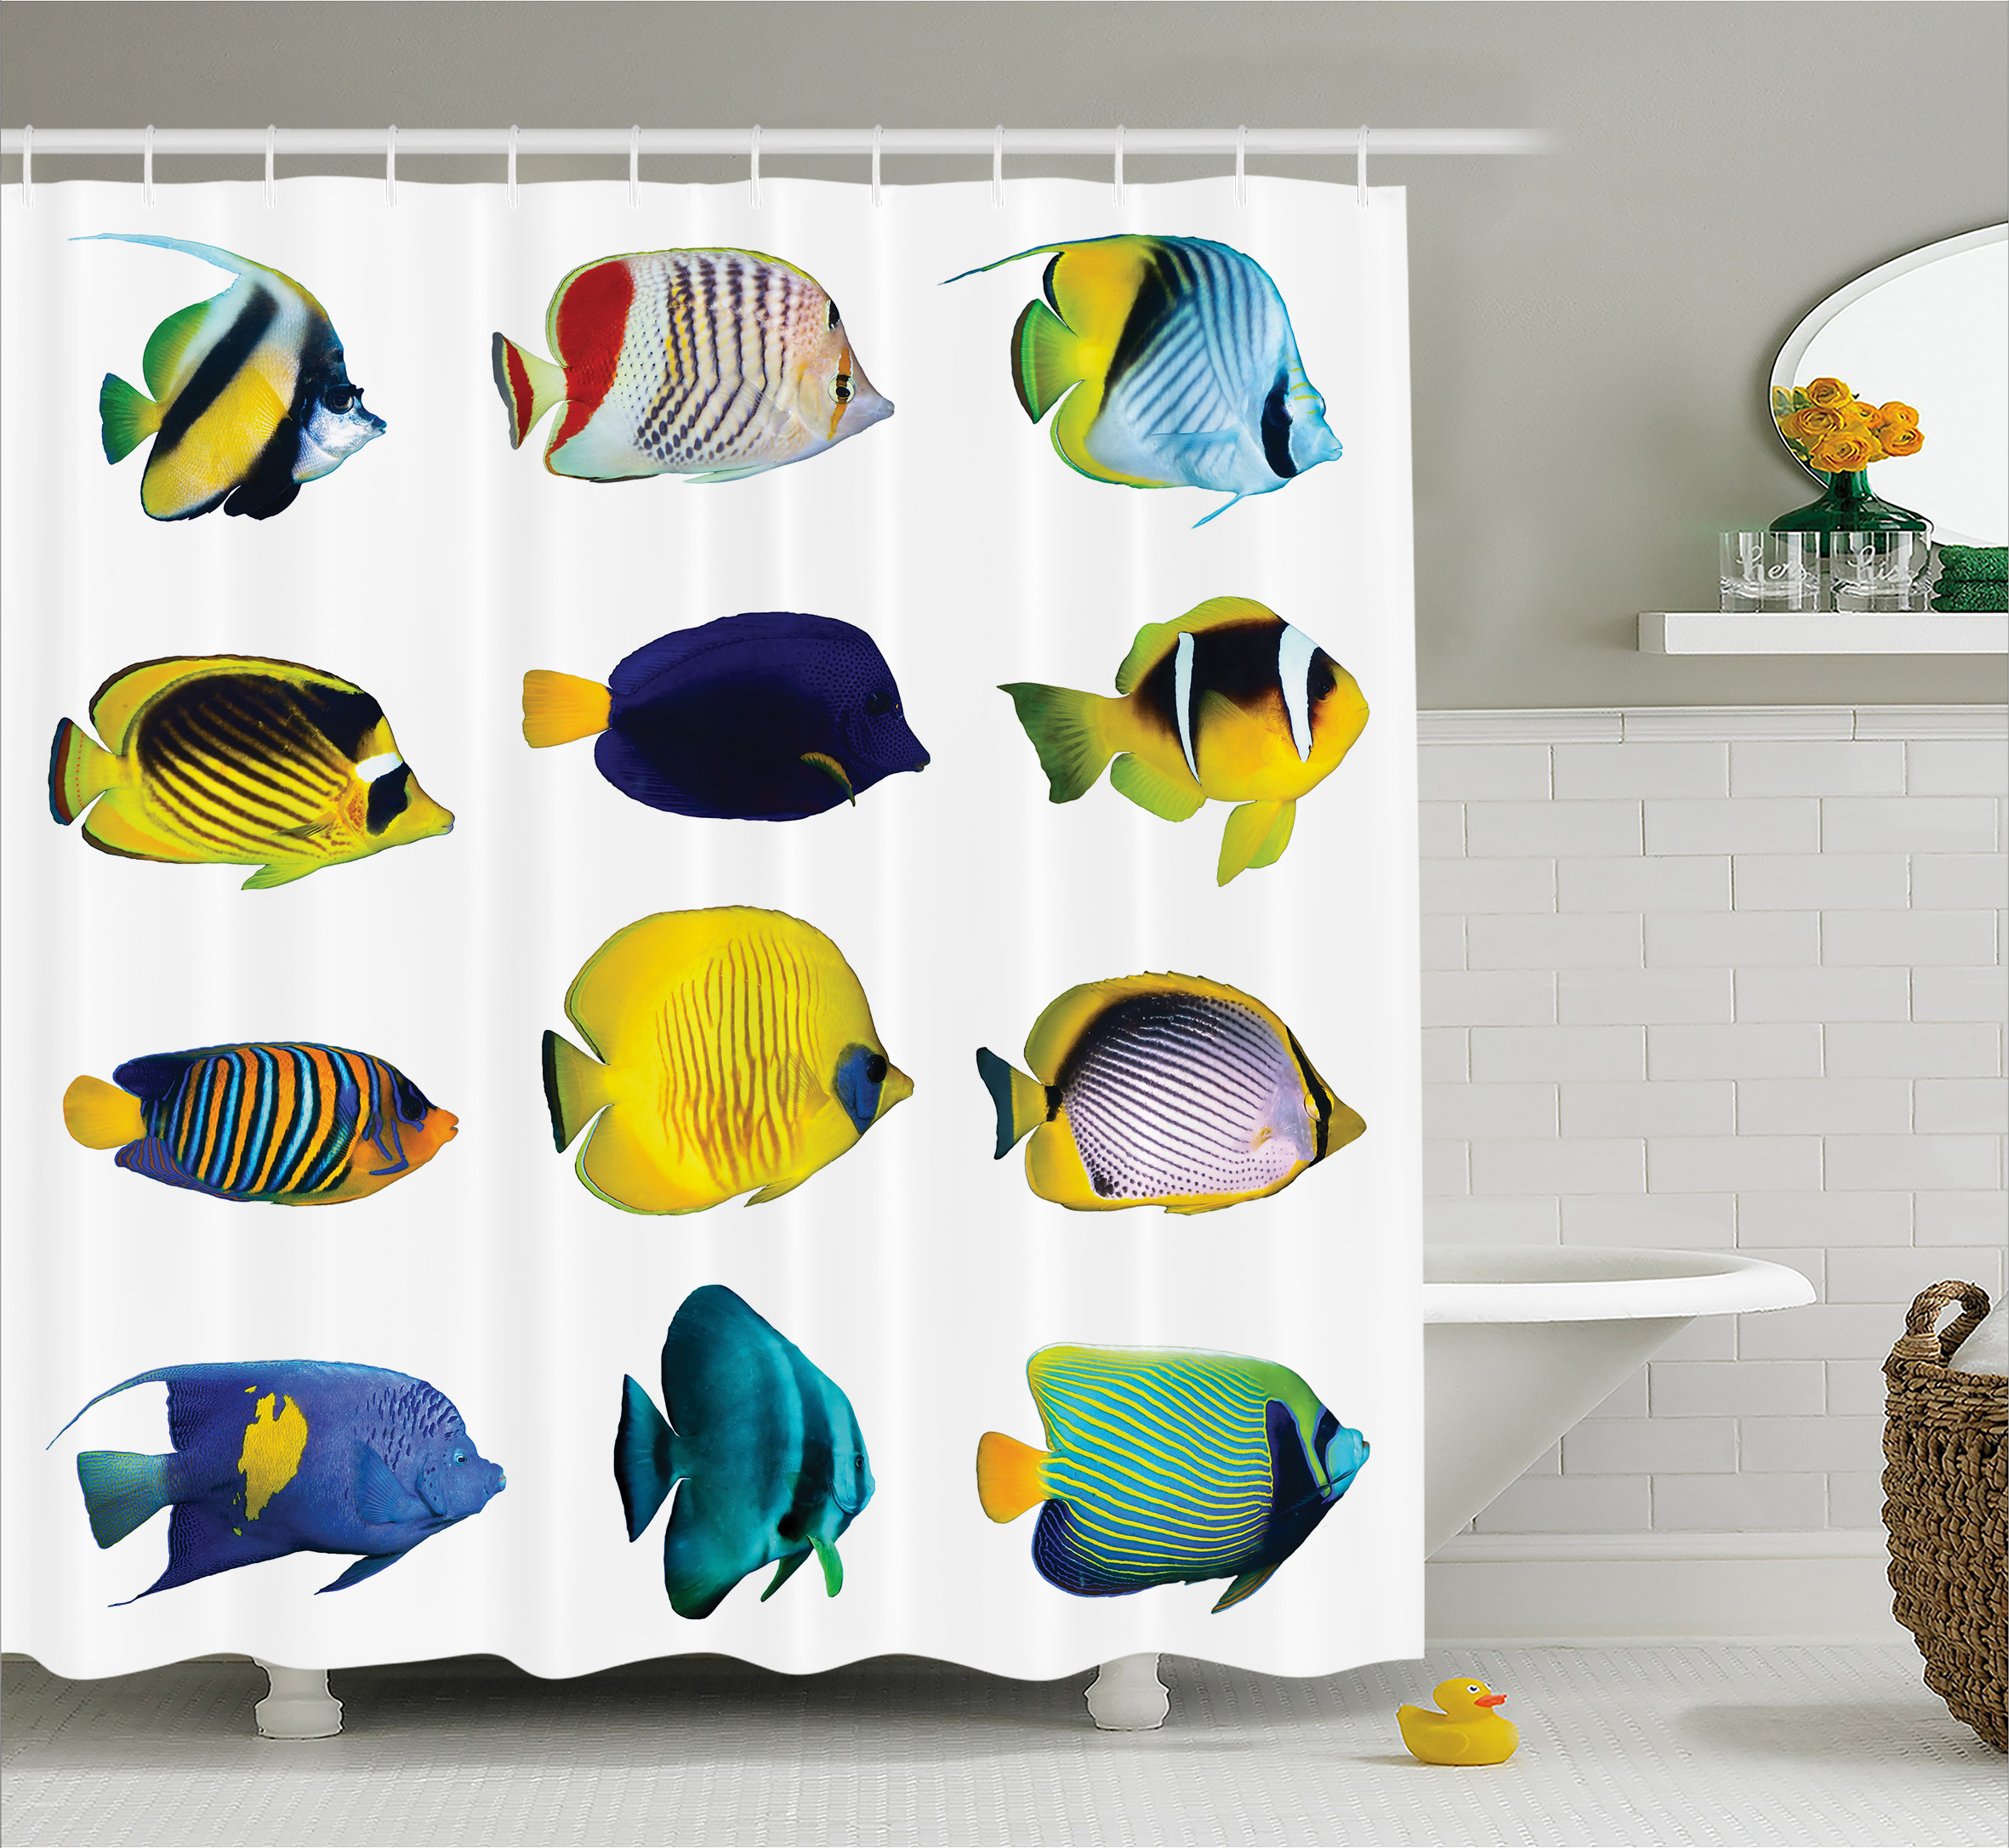 Nemo Bathroom Set Aqua Shower Curtain Tropical Fish Animal Figures With Zebrasoma Anemonefish Dive Nemo Aquatic Life Theme Fabric Bathroom Set With Hooks Multicolor